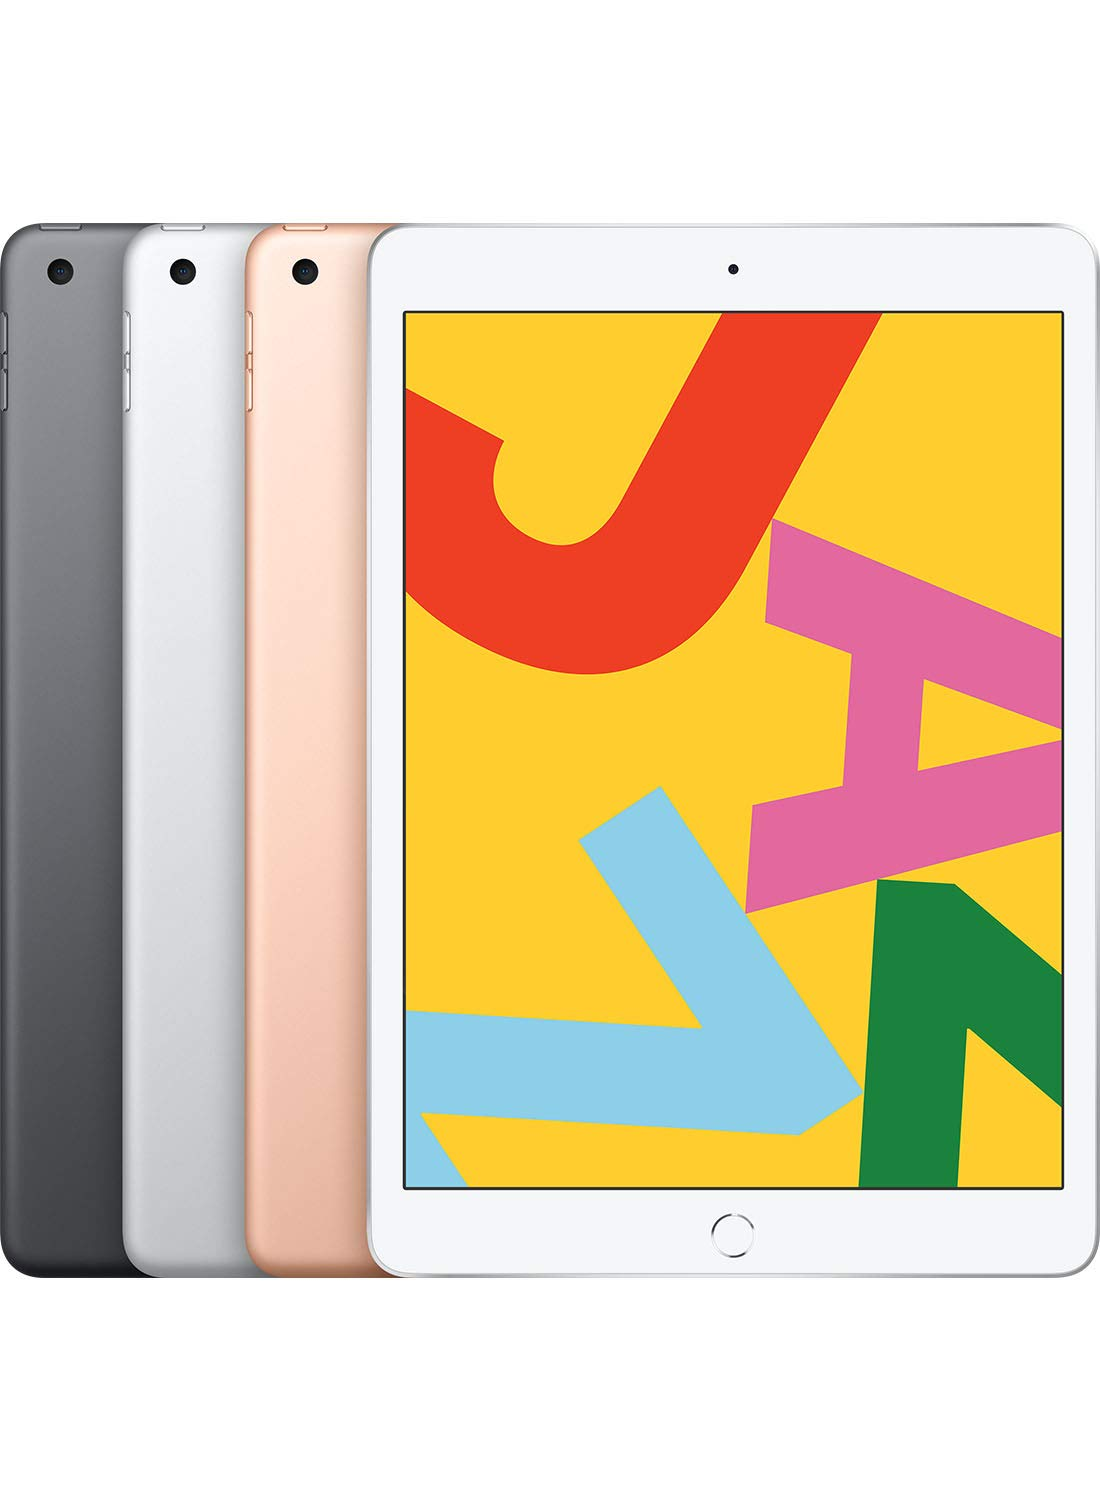 The King Of Tablets The Apple Ipad Can Be Yours For Only 249 On Cyber Monday